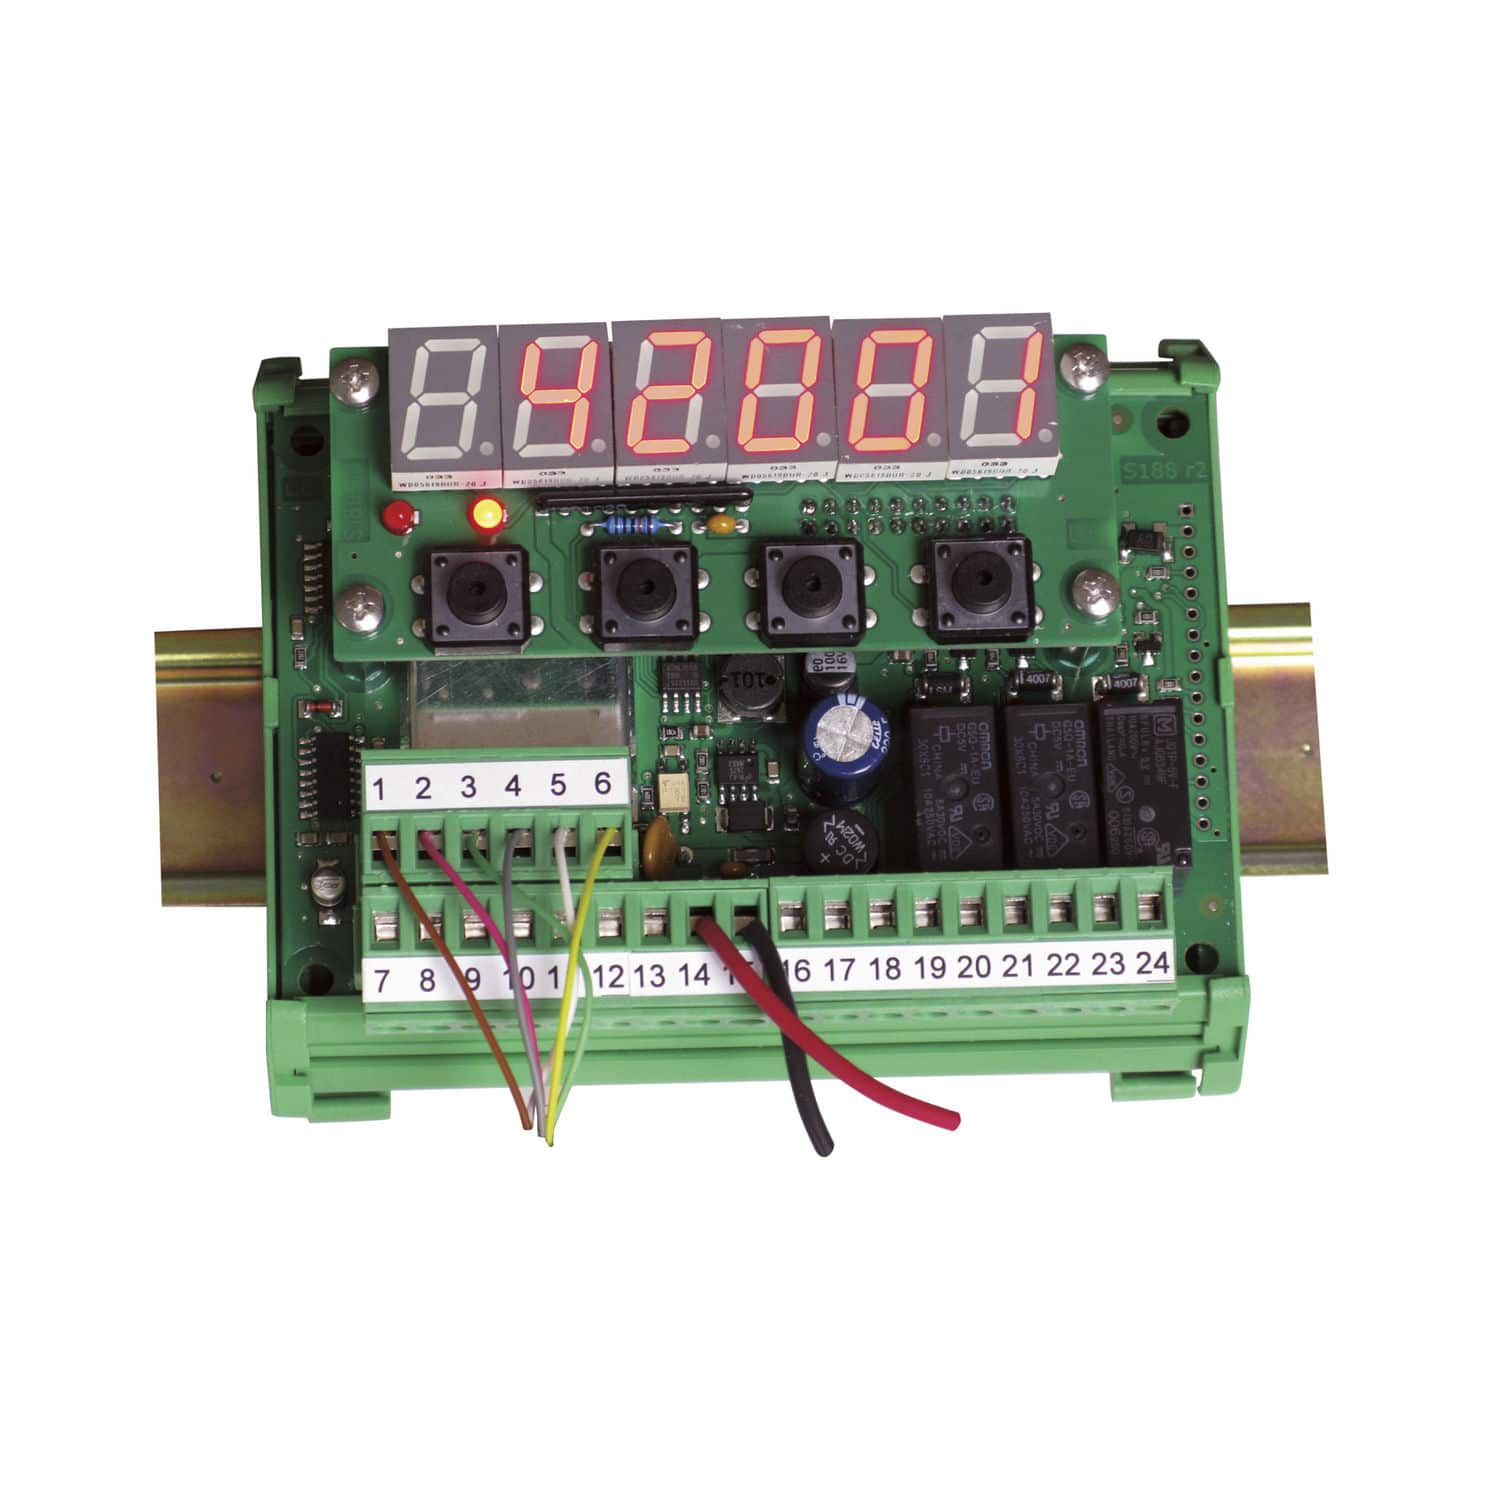 Overload Relay Din Rail Ac Dc Digital Lc 200 Pavone Sistemi Semiconductors And Electronics In An Easy To Understand